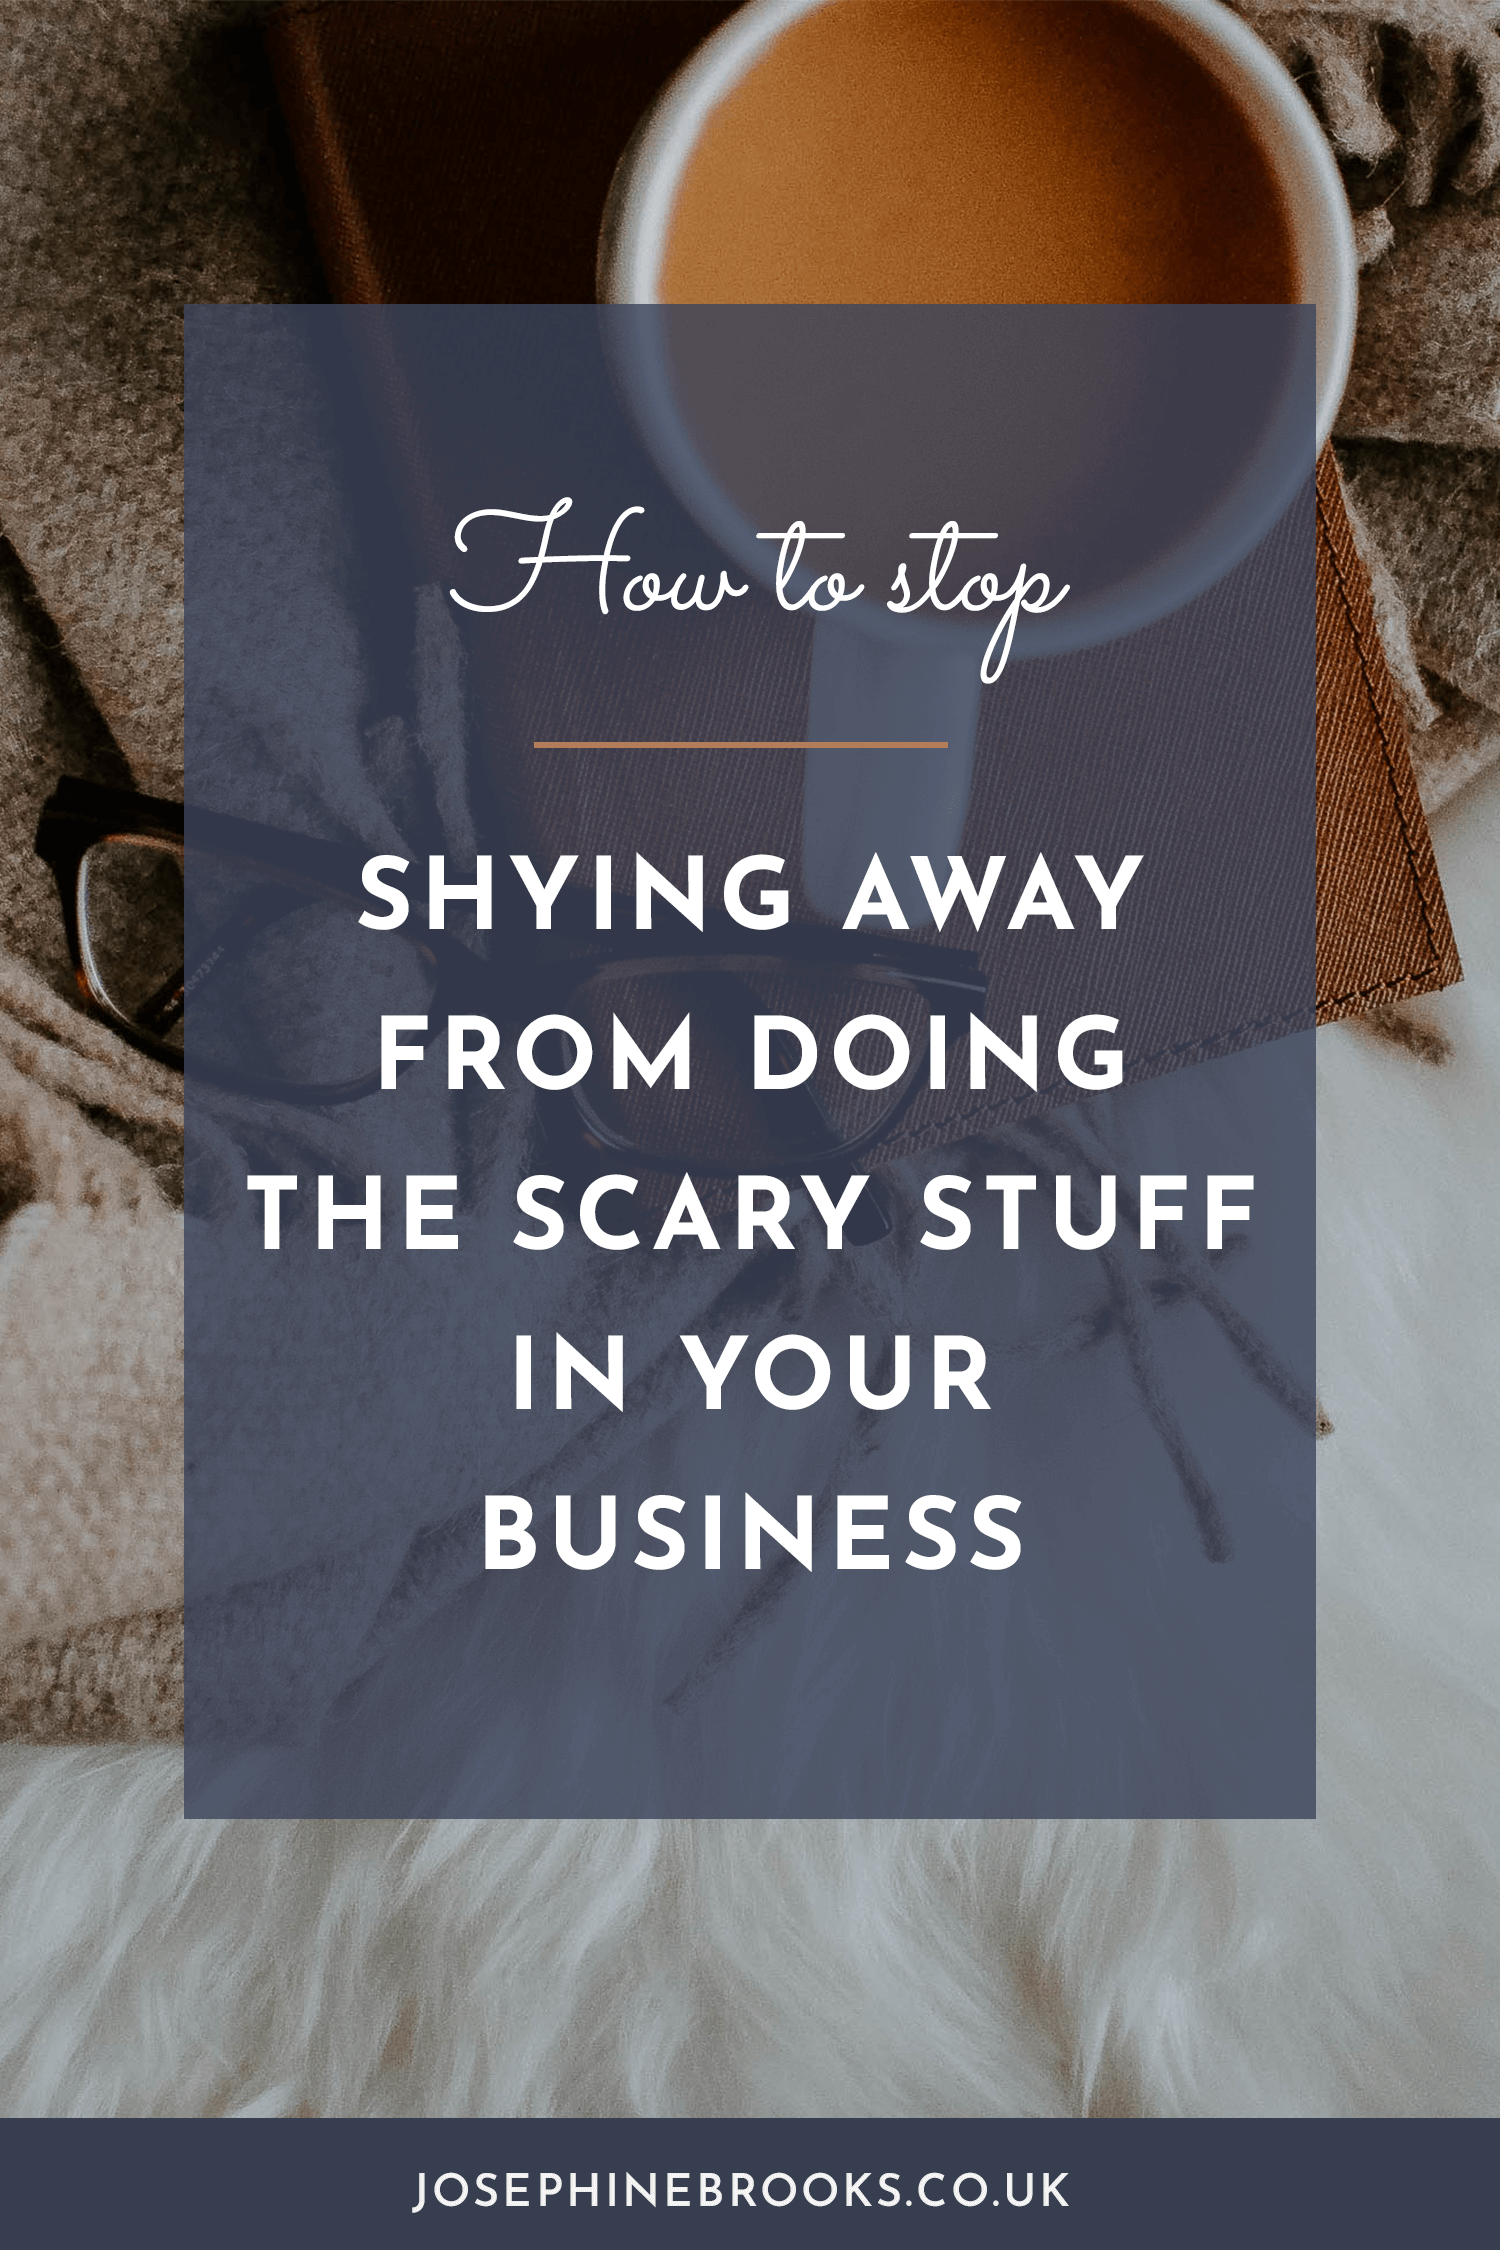 How to stop shying away from doing the scary stuff in your business